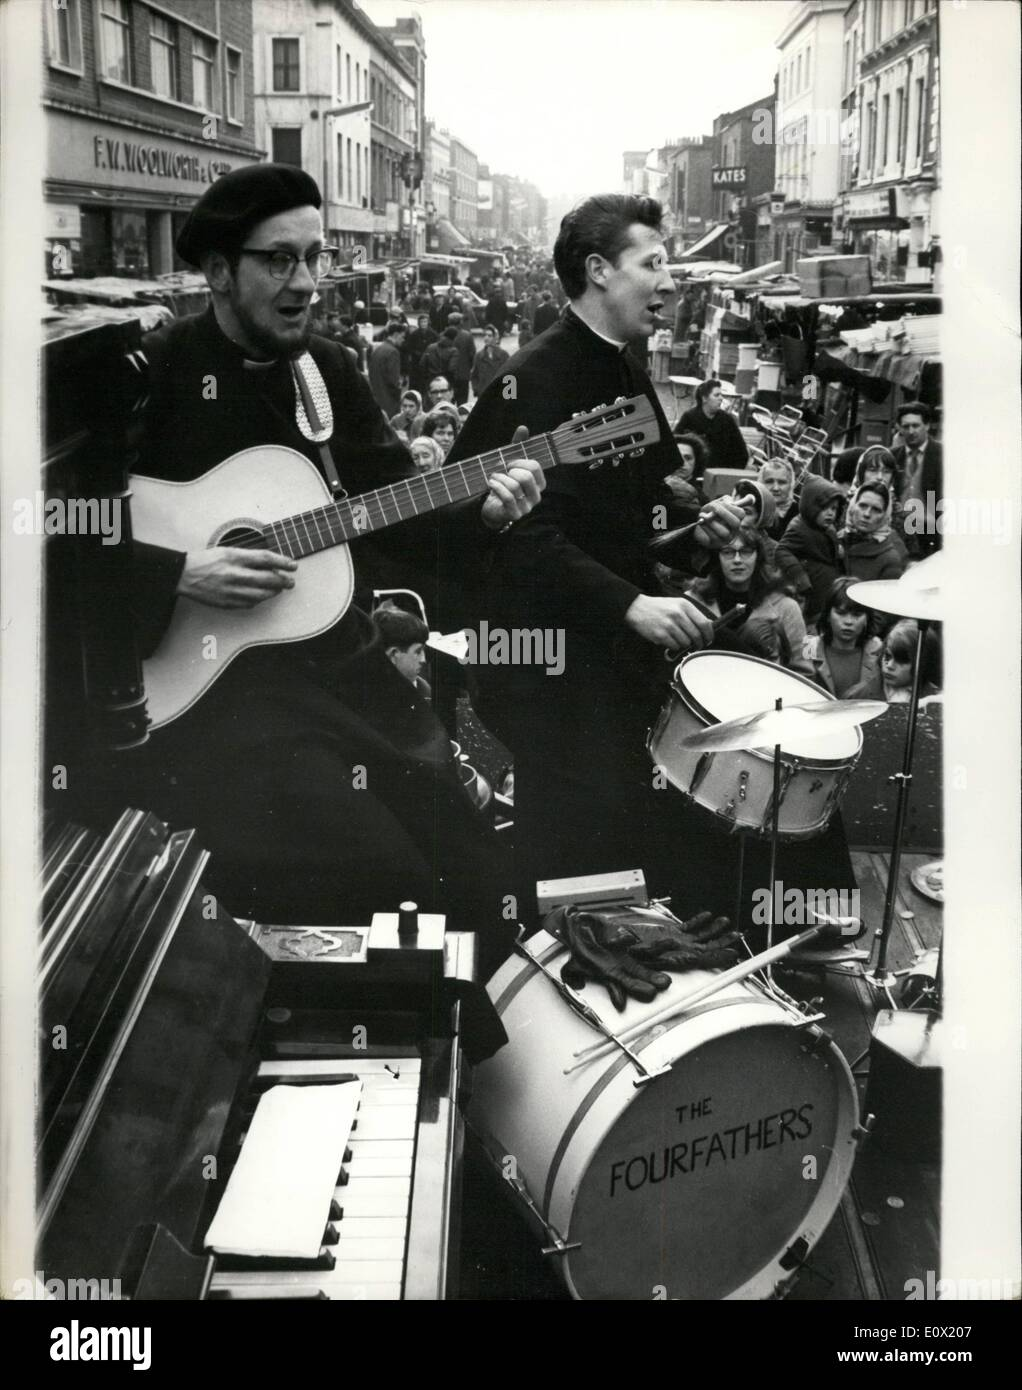 Dec. 12, 1964 - The Four fathers Entertain Christmas shoppers with Beat Versions of Carols at Hoxton Market. Four Anglican clergymen today played beat versions of religious music and carols to entertain Christmas Shoppers at Horton Market, London. The group, who call themselves ''The Fourfathers'' play their music from a lorry while parishioners collect for charity. The leader is the Rev. Kenneth Loveless, 53 year old Rural Dean of Shoreditch, plays concertina; Father Jeremy Hutchinson, 32, Vicar of St - Stock Image